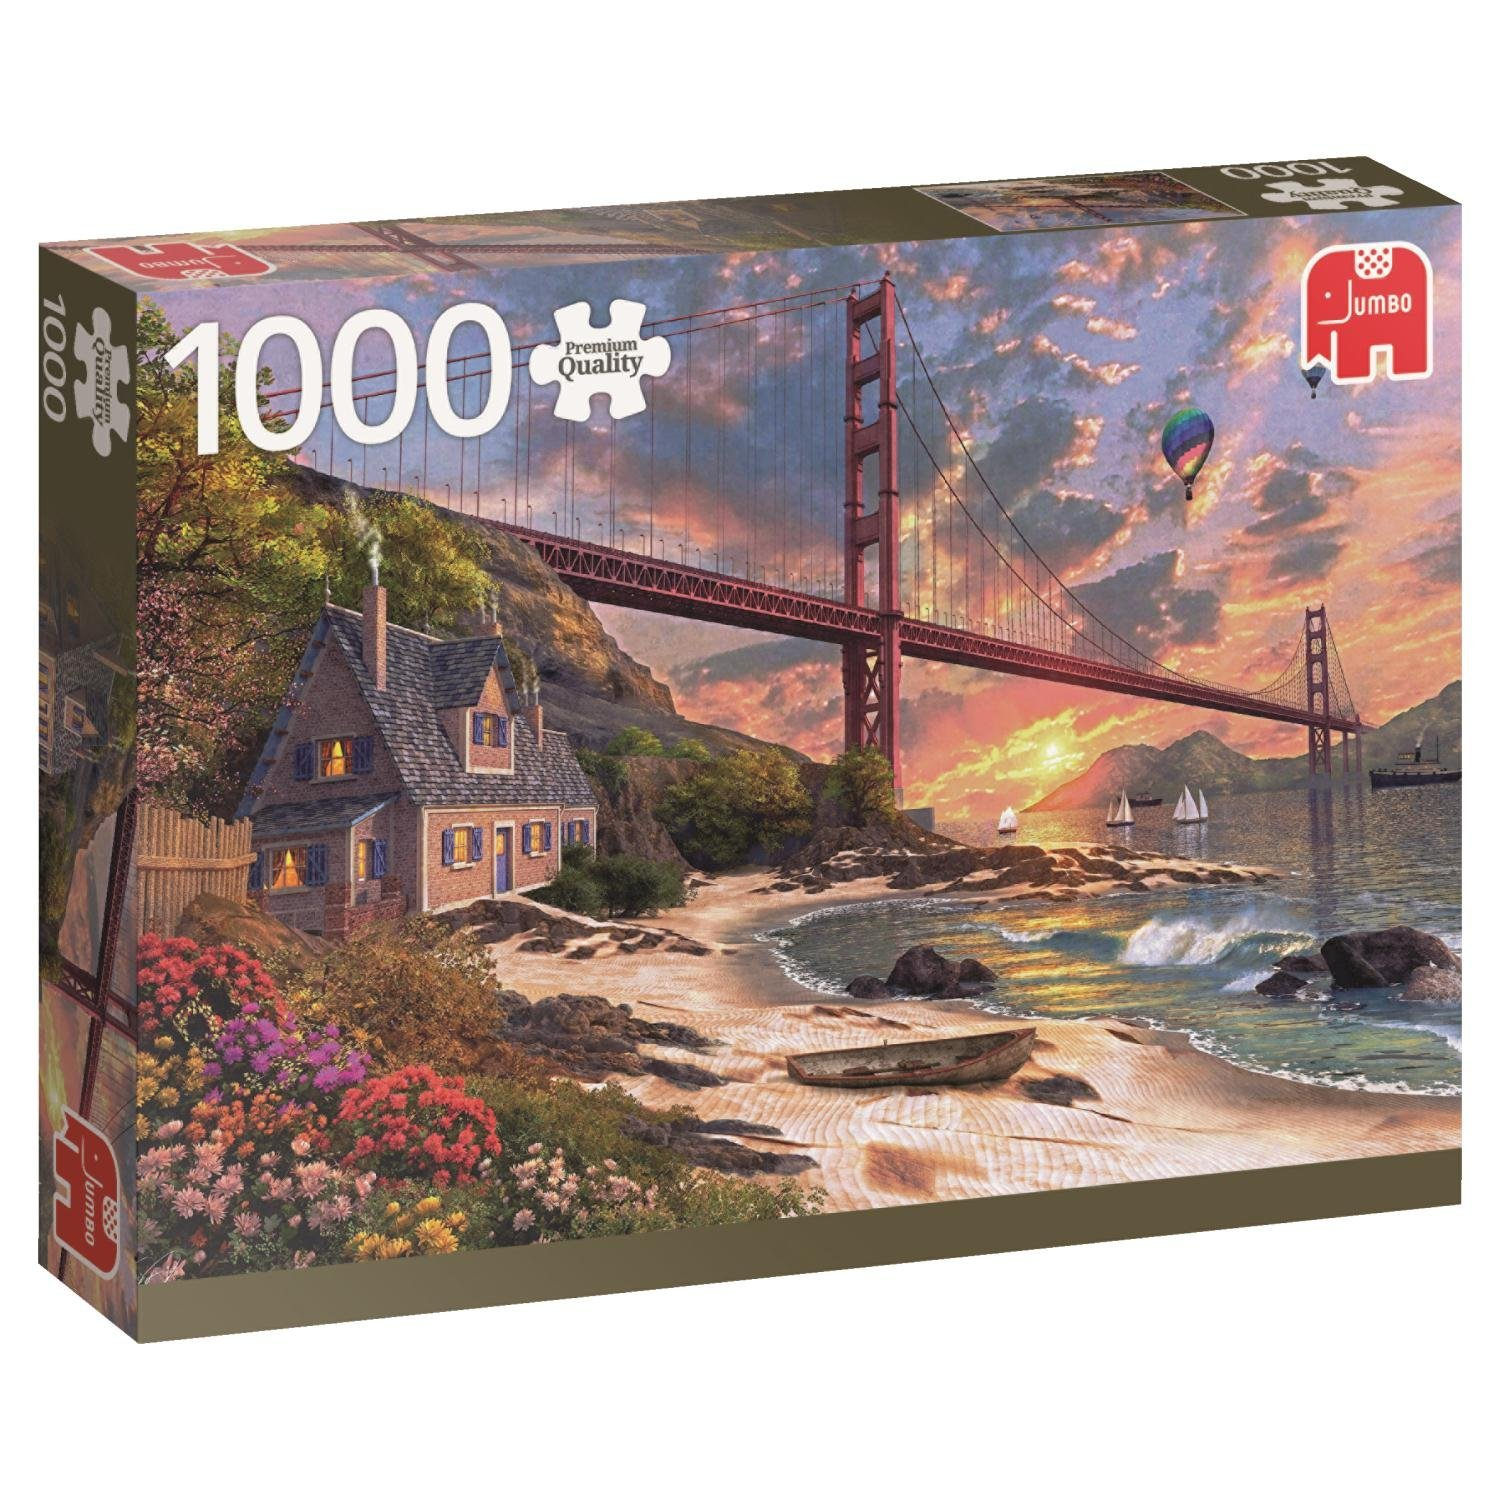 Premium Collection Jumbo, Golden Gate Bridge, San Francisco, 1000 Piece Falcon Jigsaw